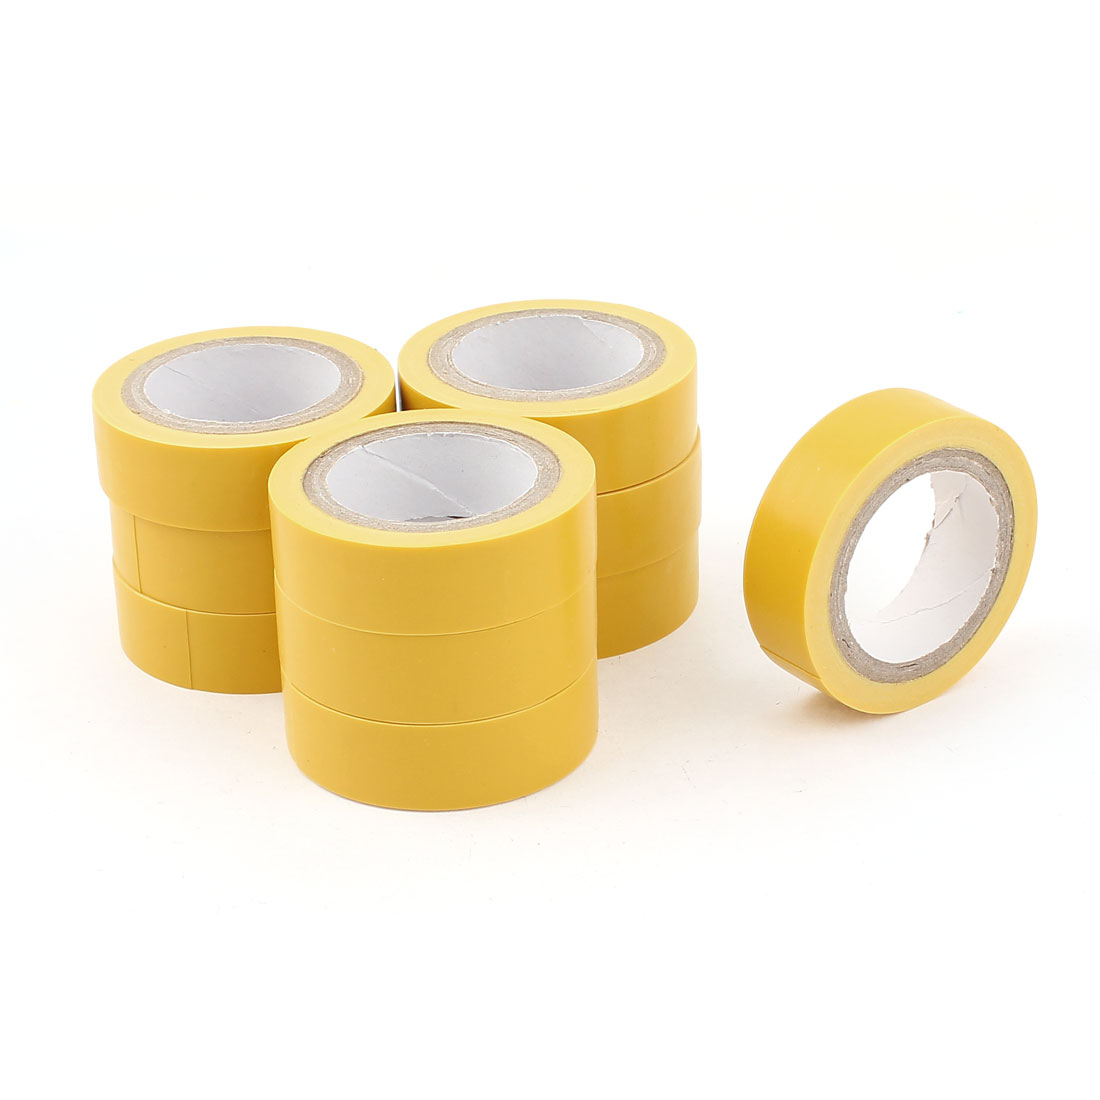 33Ft Long 15mm Wide PVC Self-adhesive Electrical Insulation Tape Yellow 10 Rolls